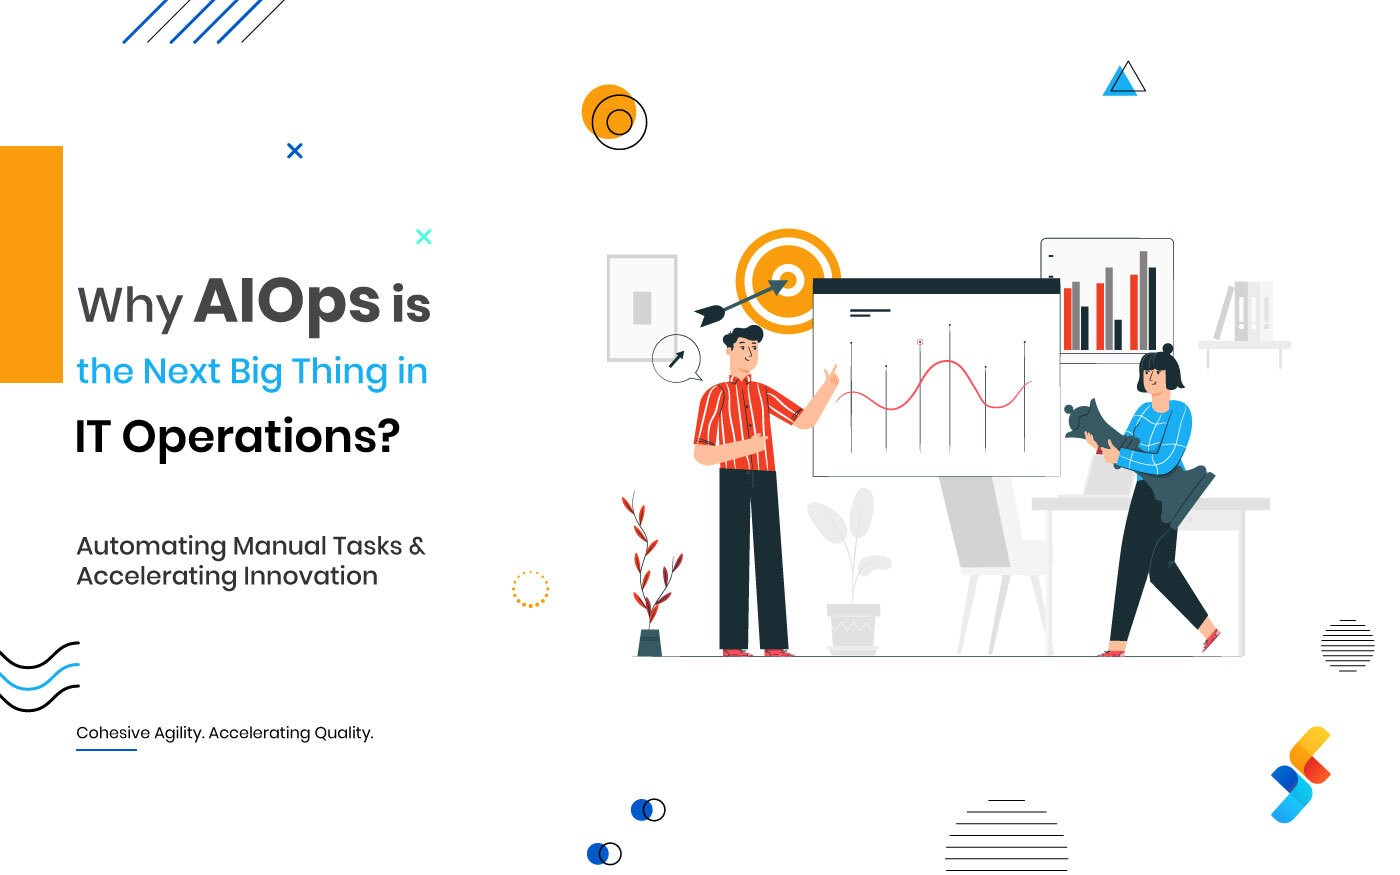 Why AIOps is the Next Big Thing in IT Operations